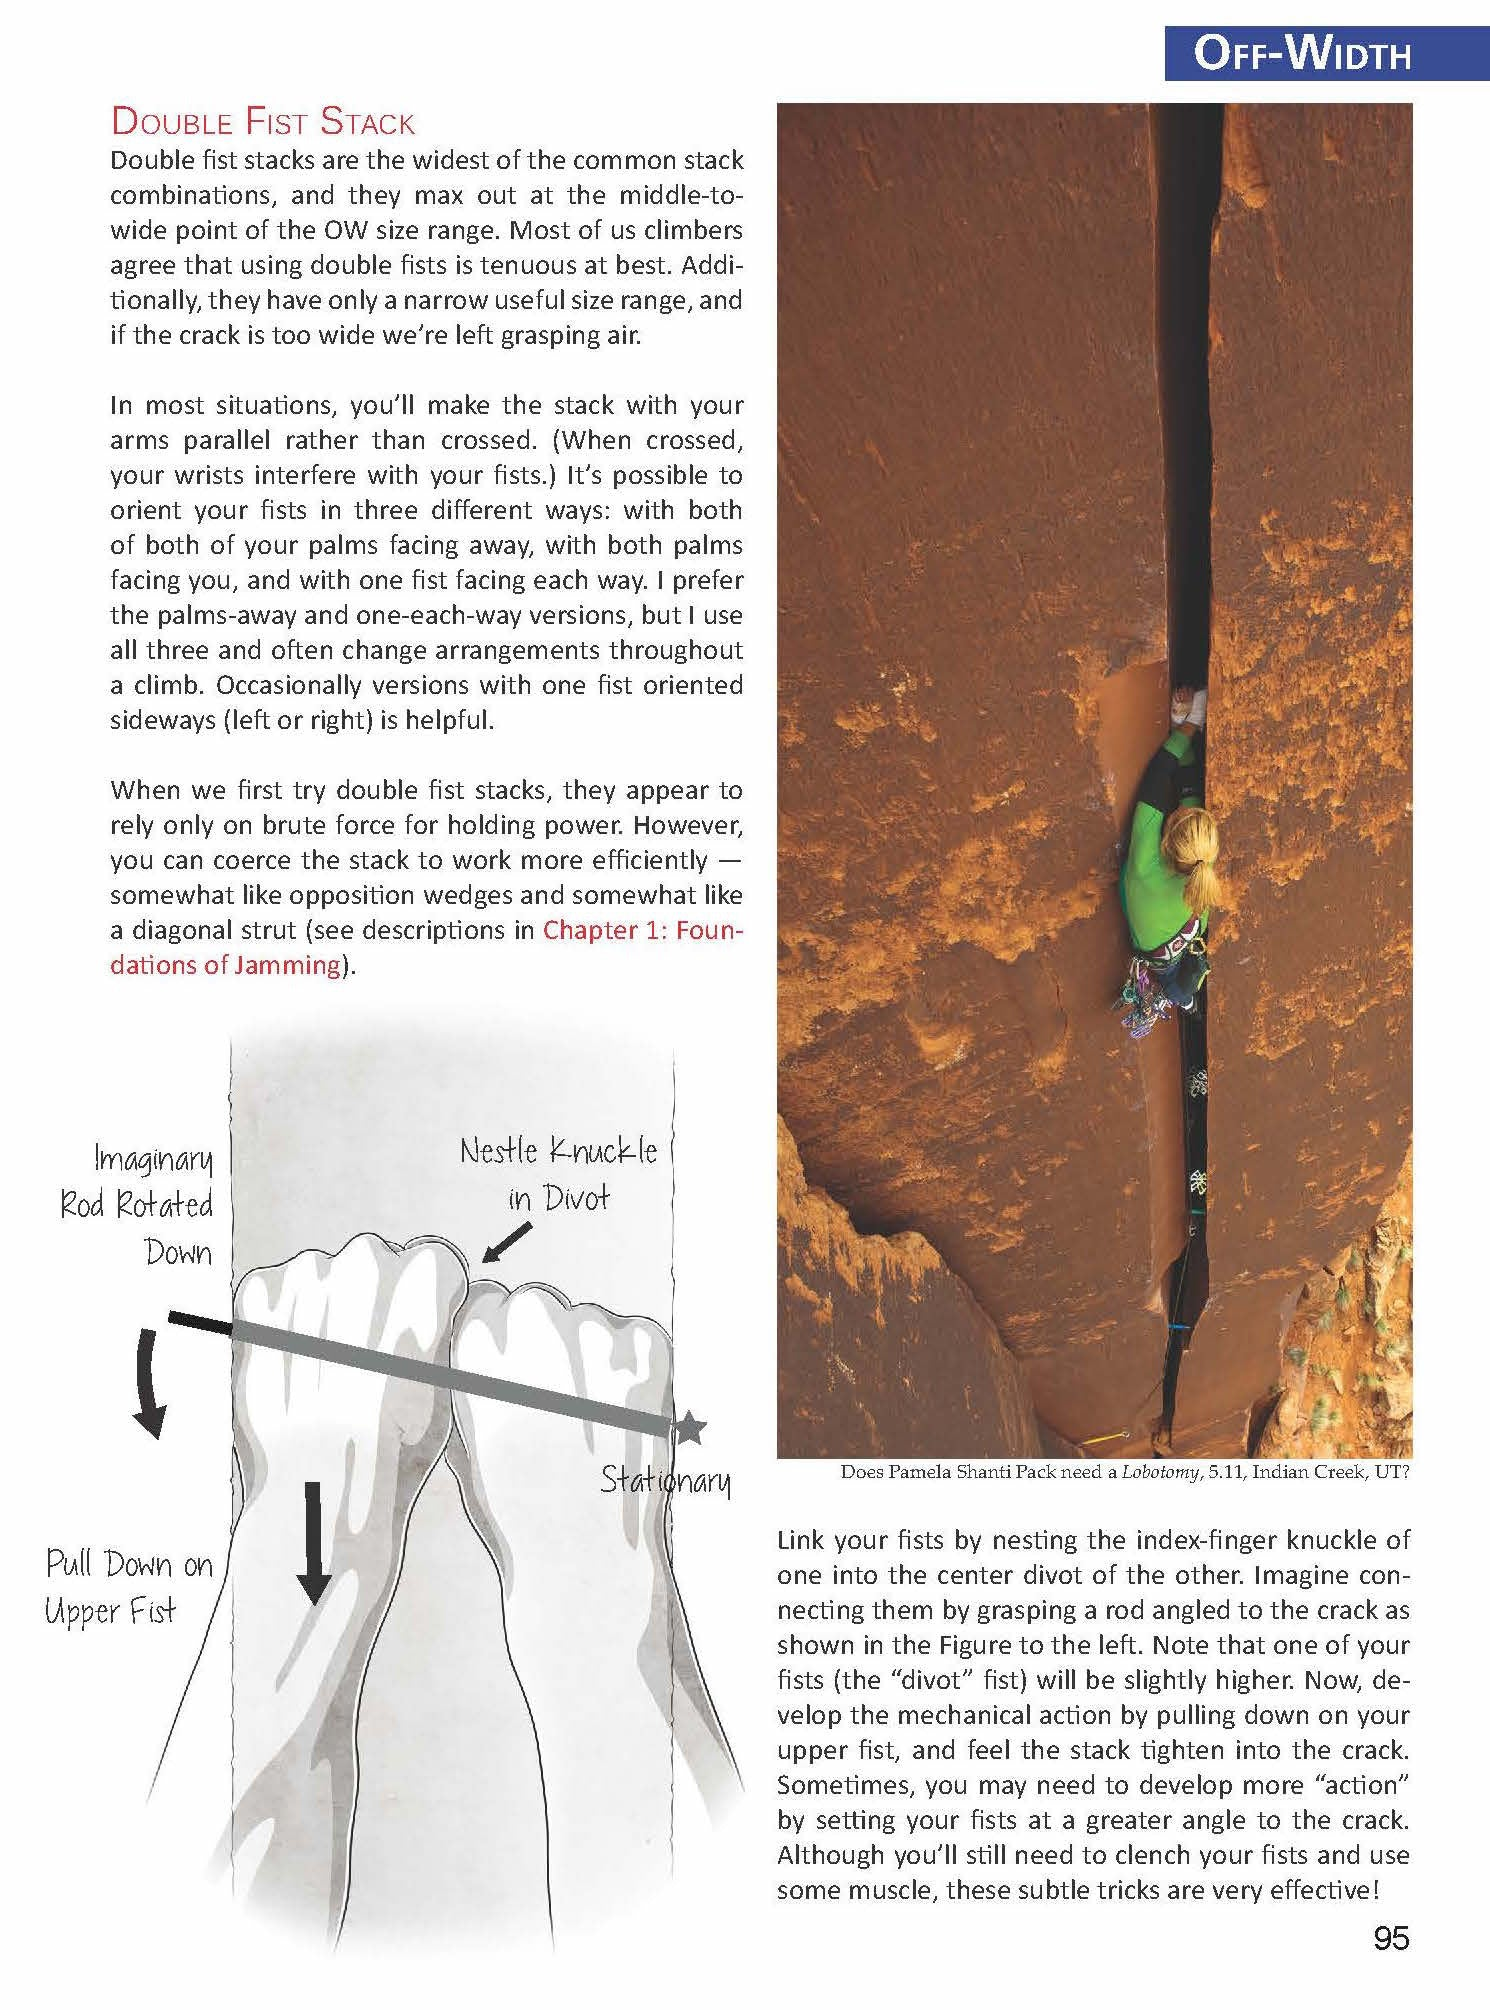 Crack Climber's Technique Manual - Get Better at Crack Climbing